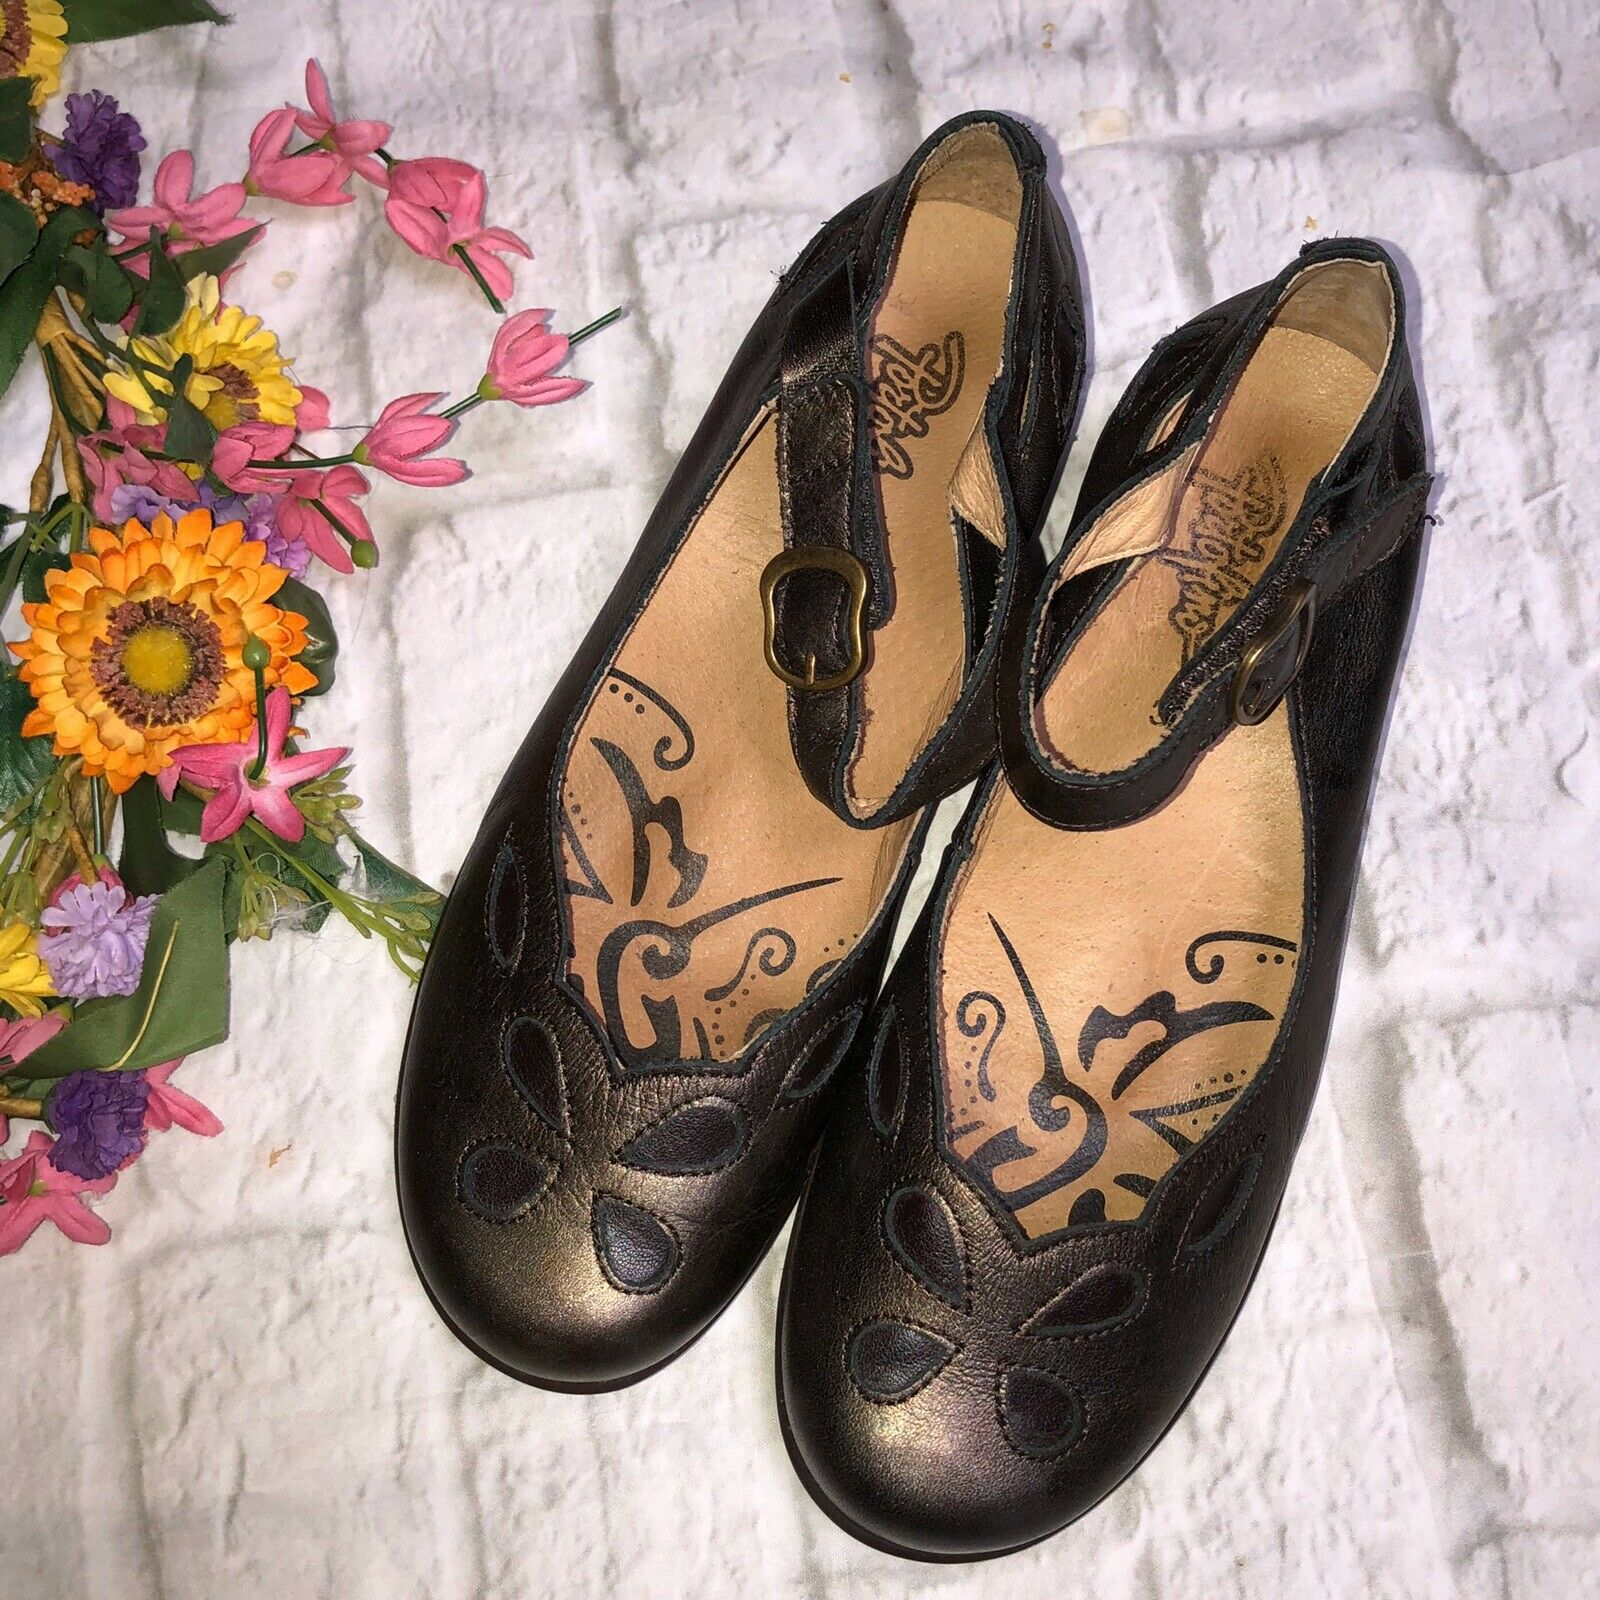 Portofino 37 Comfort Bronze Cut Out Mary Janes Shoes Made in Spain 6.5/7